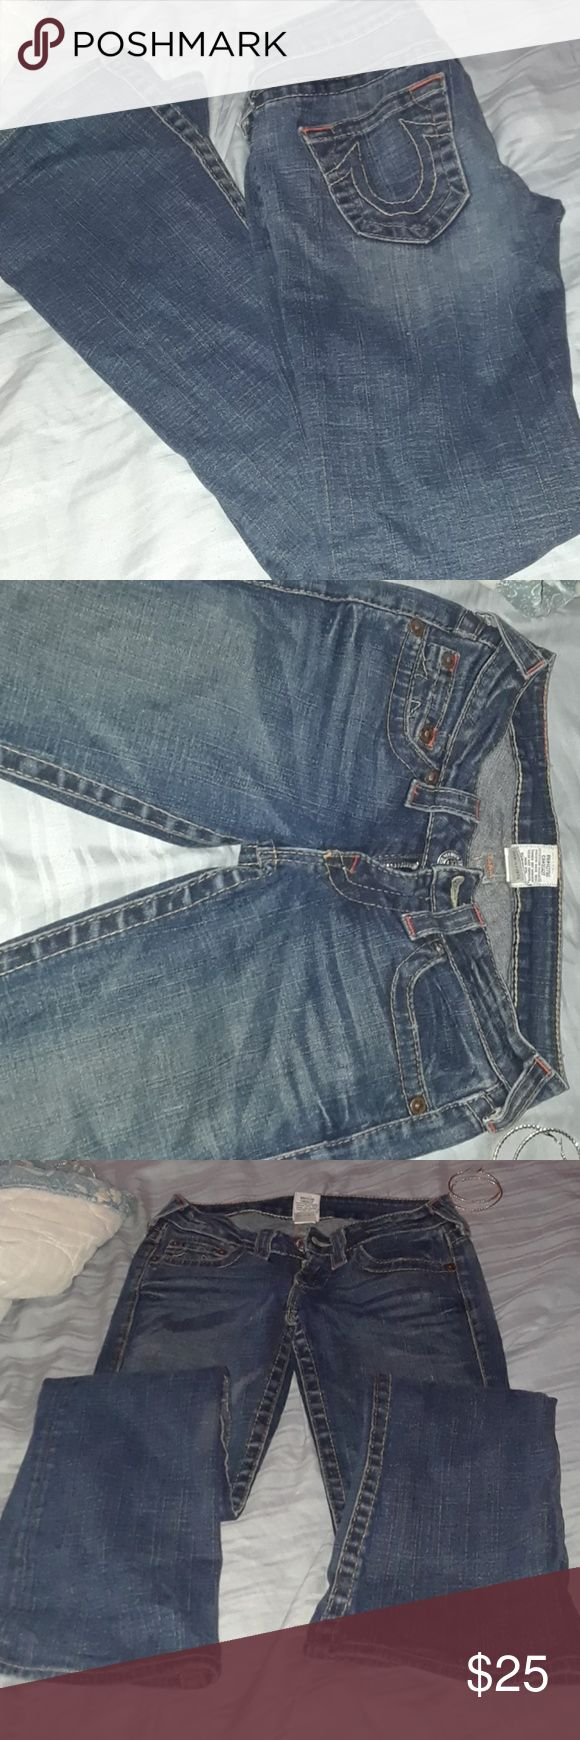 Gently used true religion jeans Old style of name brands jeans True Religion Jeans Boot Cut